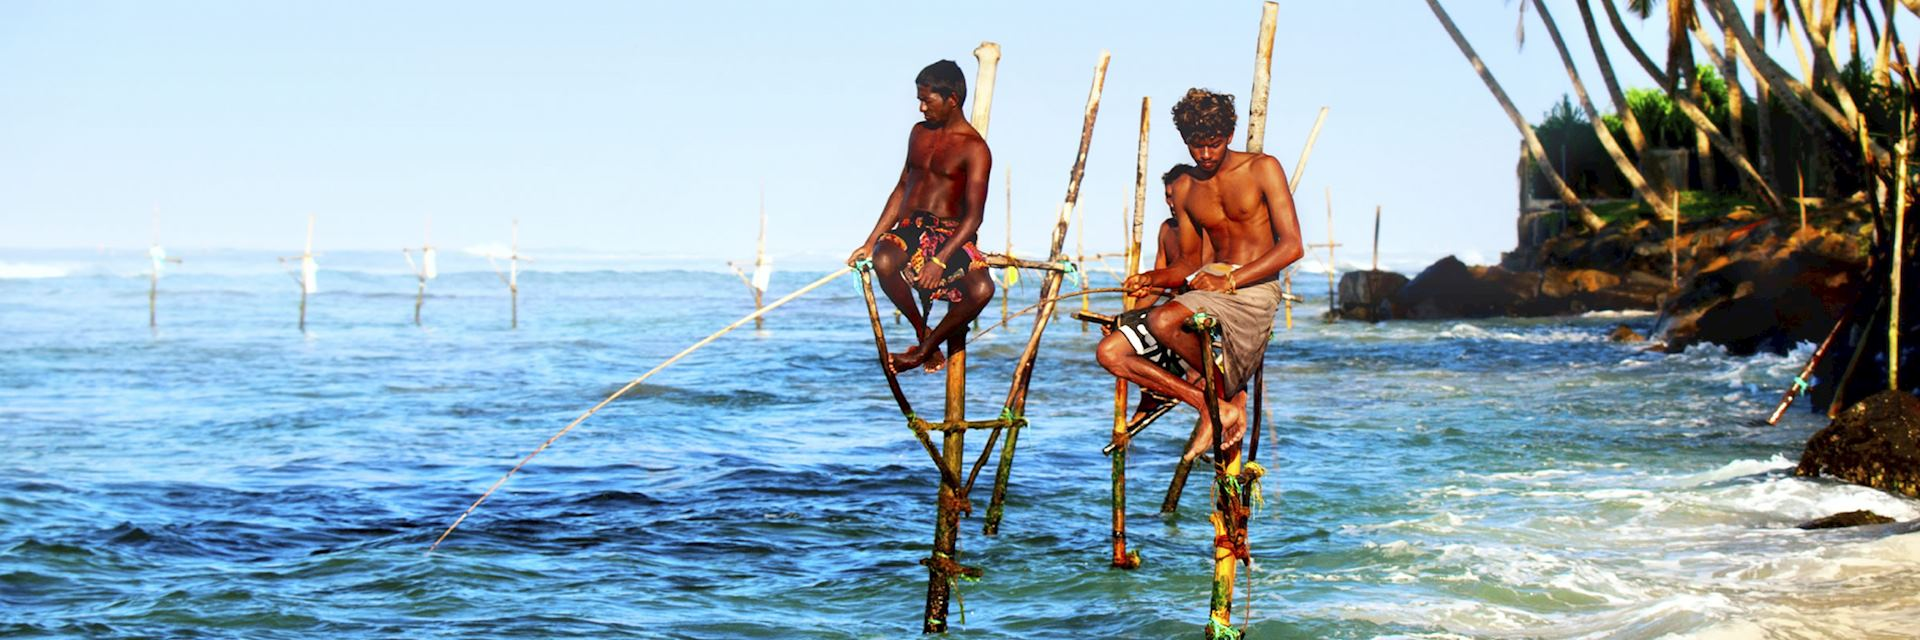 Stilt fishermen in Galle